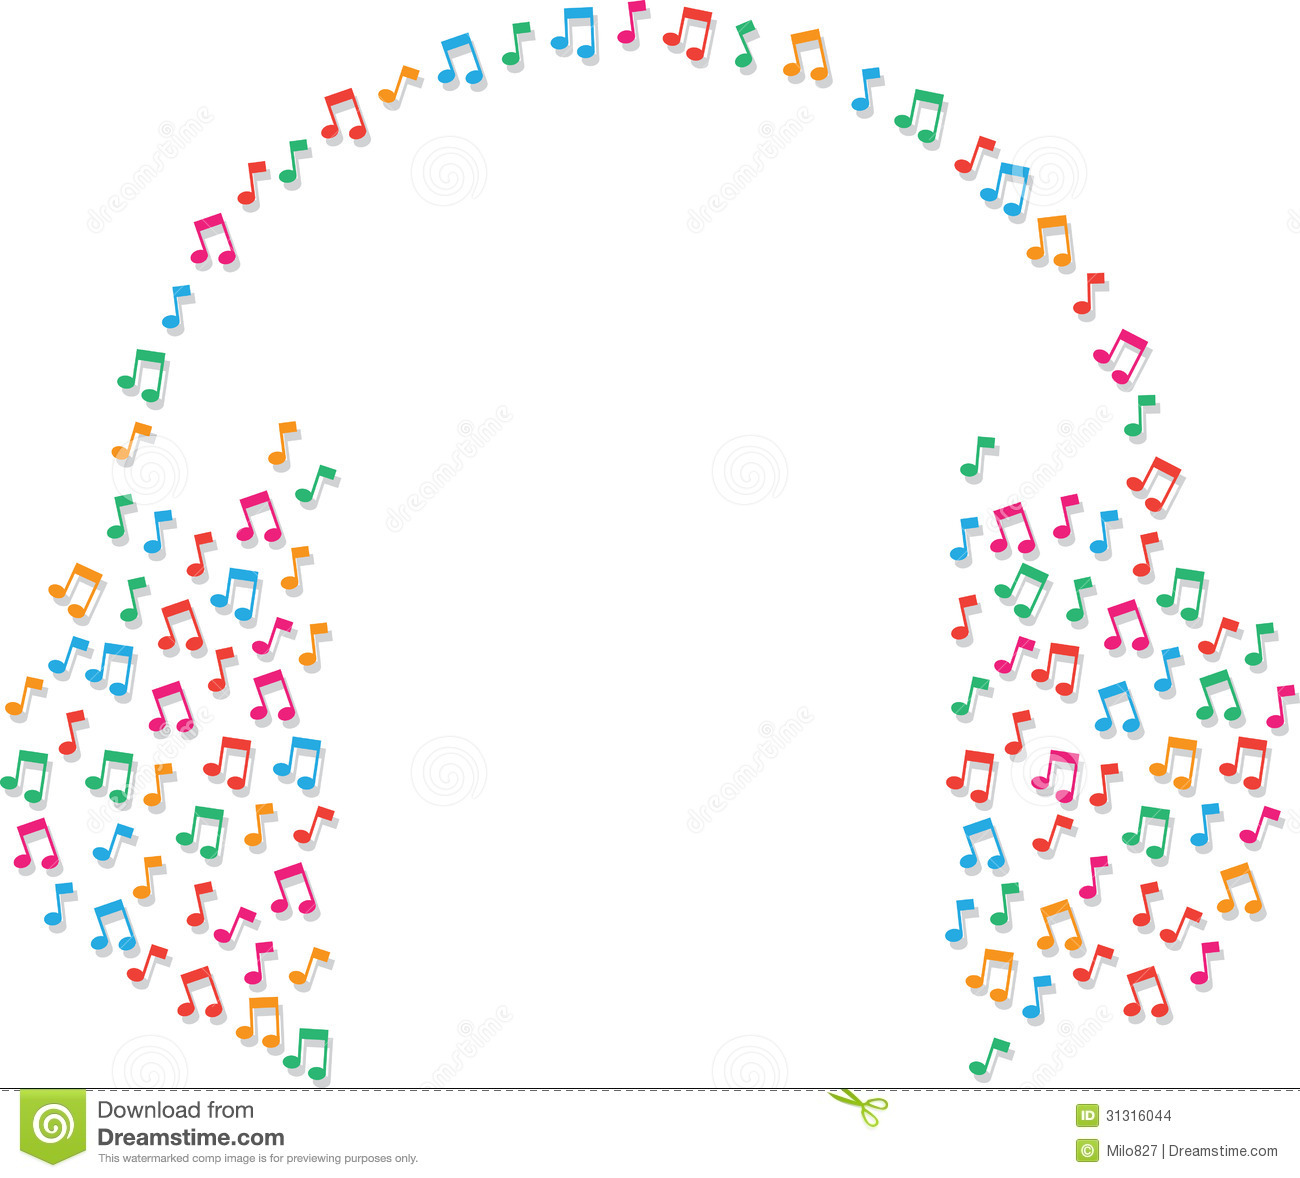 Music notes as headphones